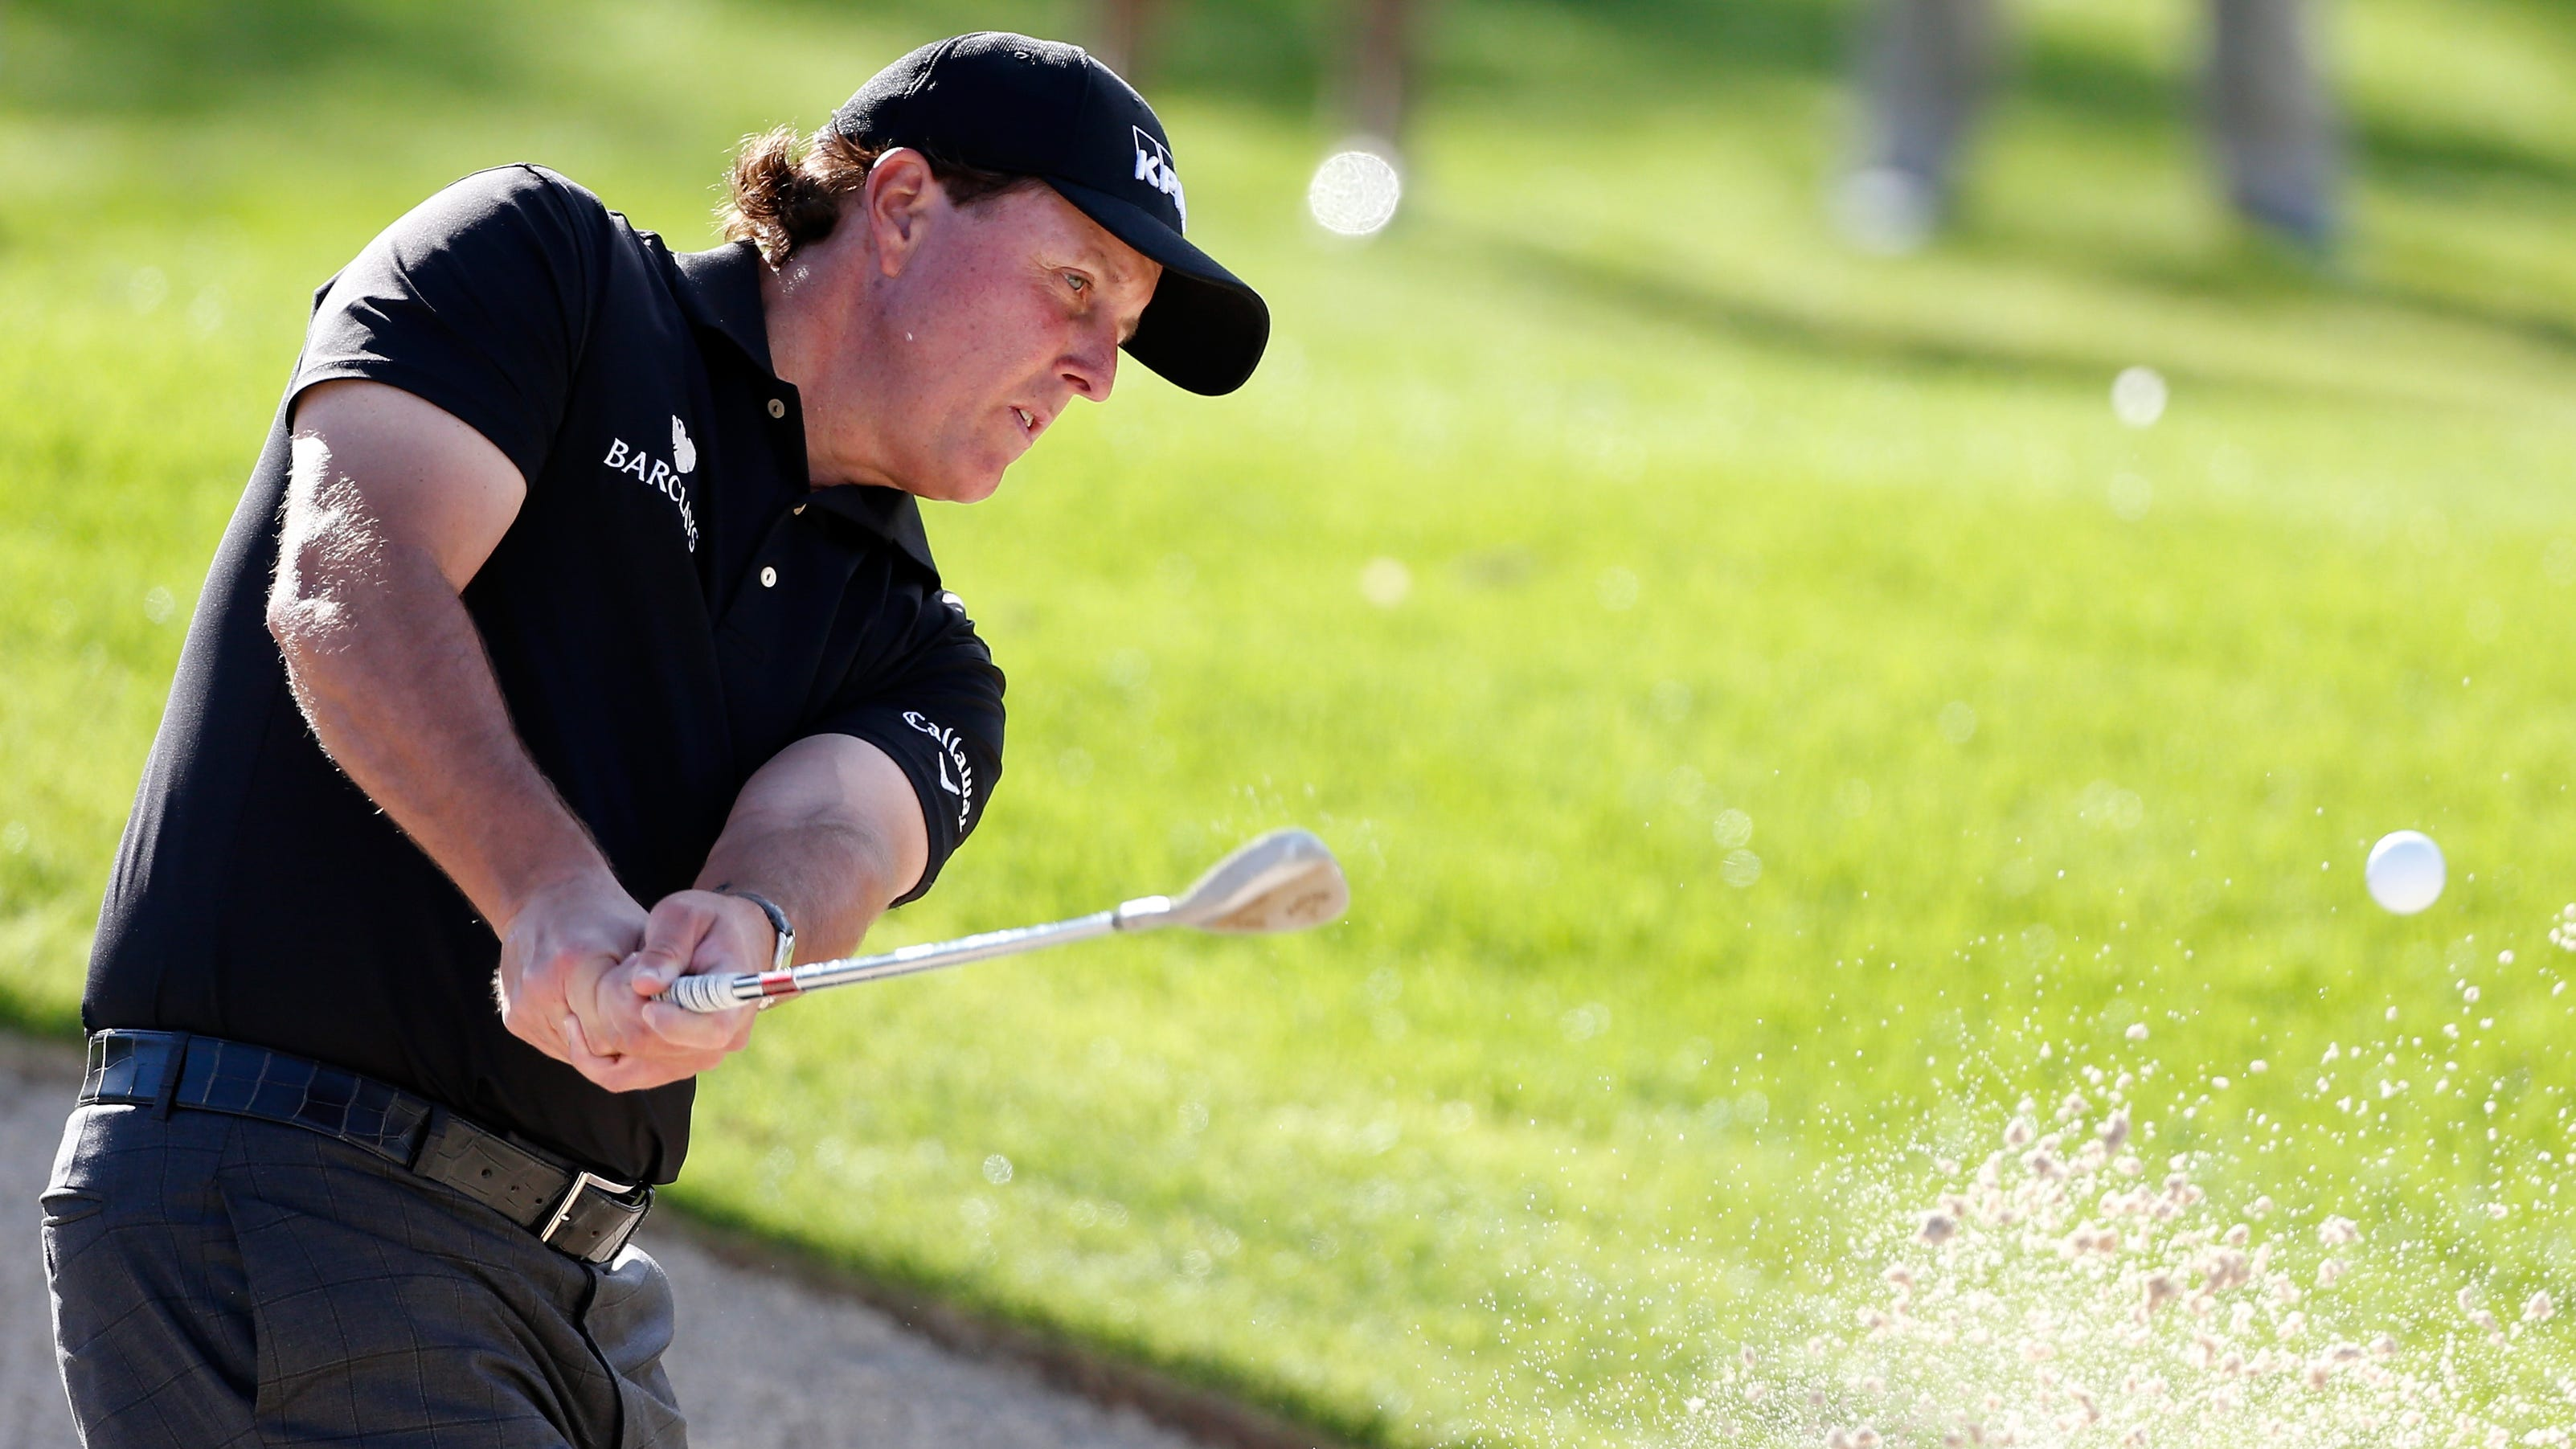 Thursday's roundup: Mickelson struggles in return - The Detroit News